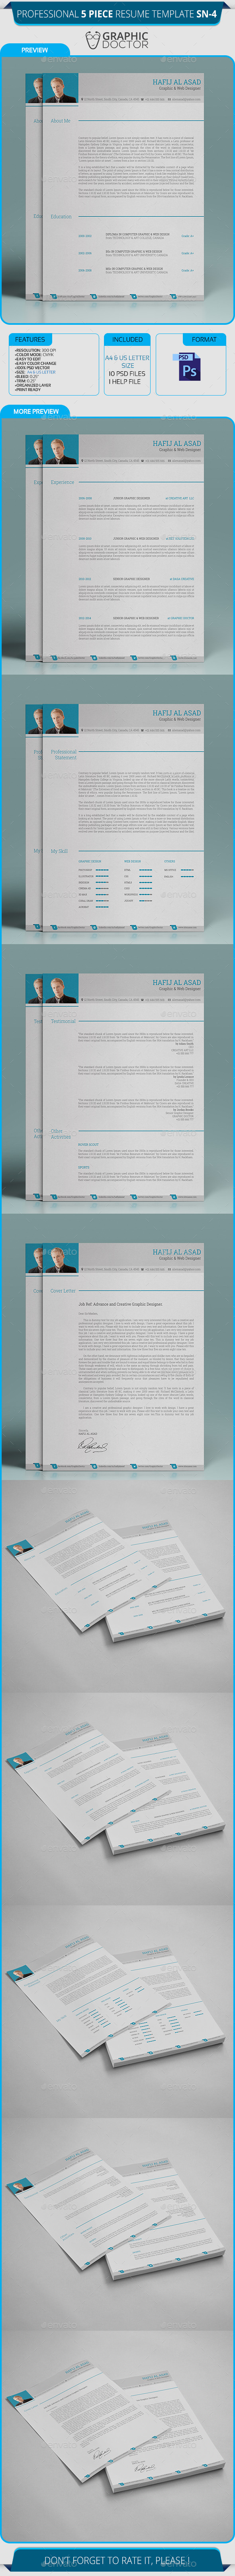 GraphicRiver Corporate Resume Template SN-04 8824778